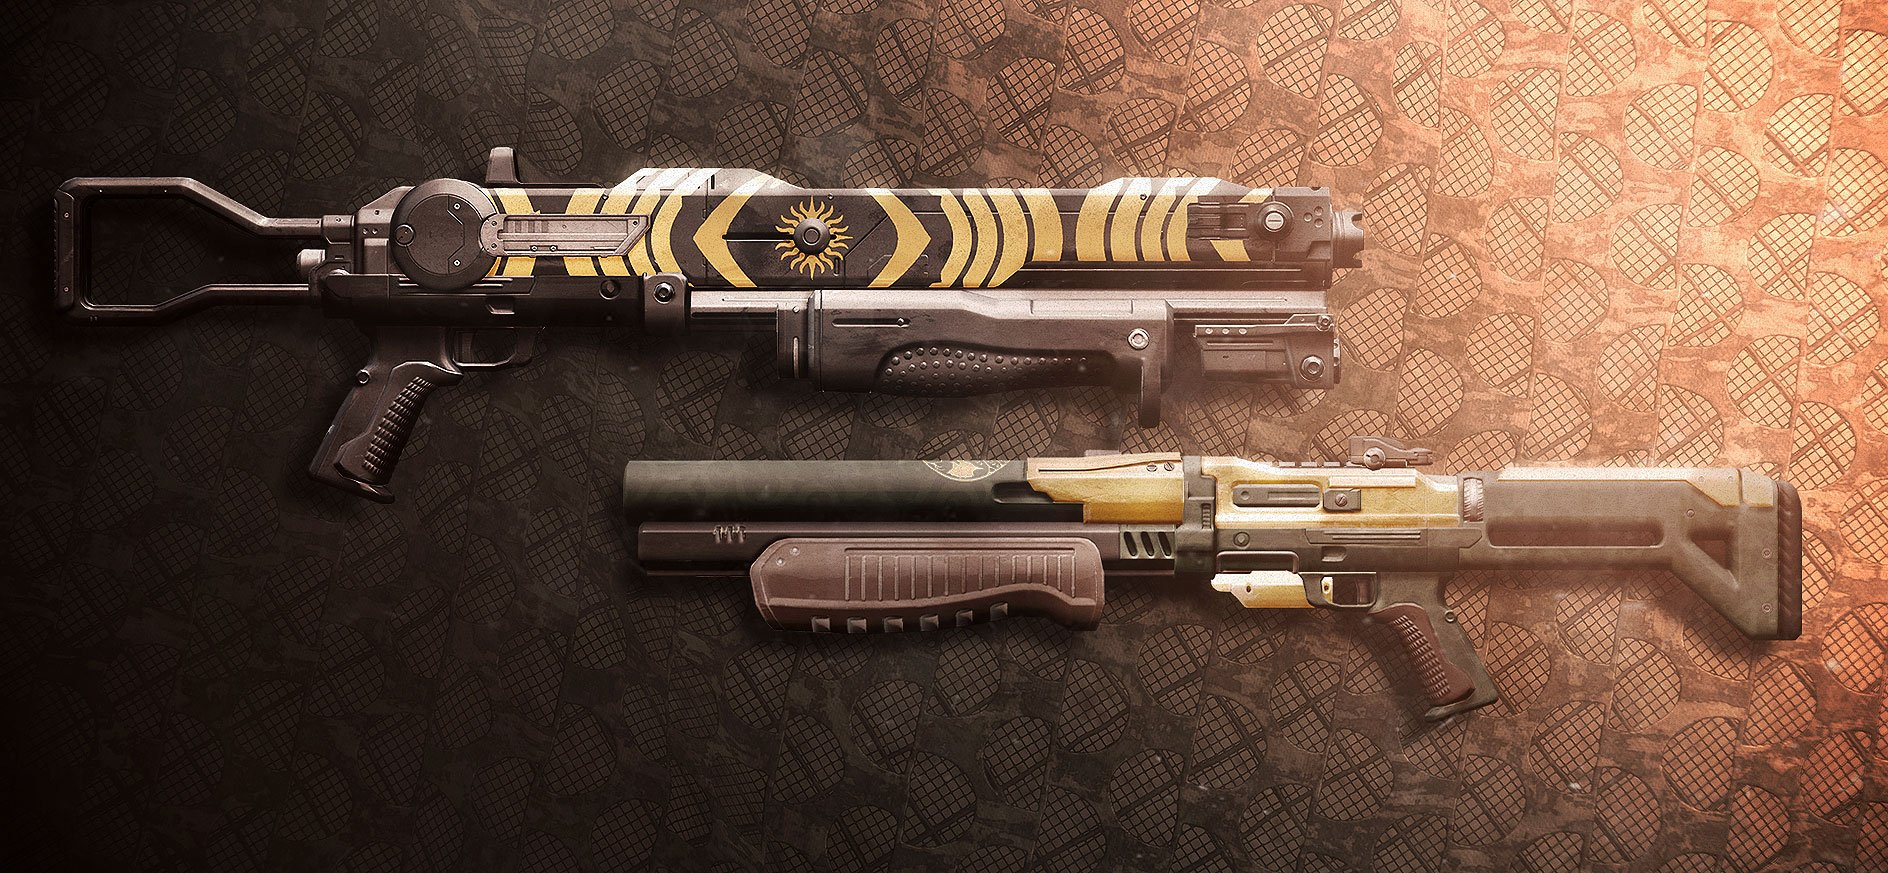 Destiny 2's latest nerfs hit The Lament, Felwinter's Lie, Falling Guillotine, Frenzy, and more